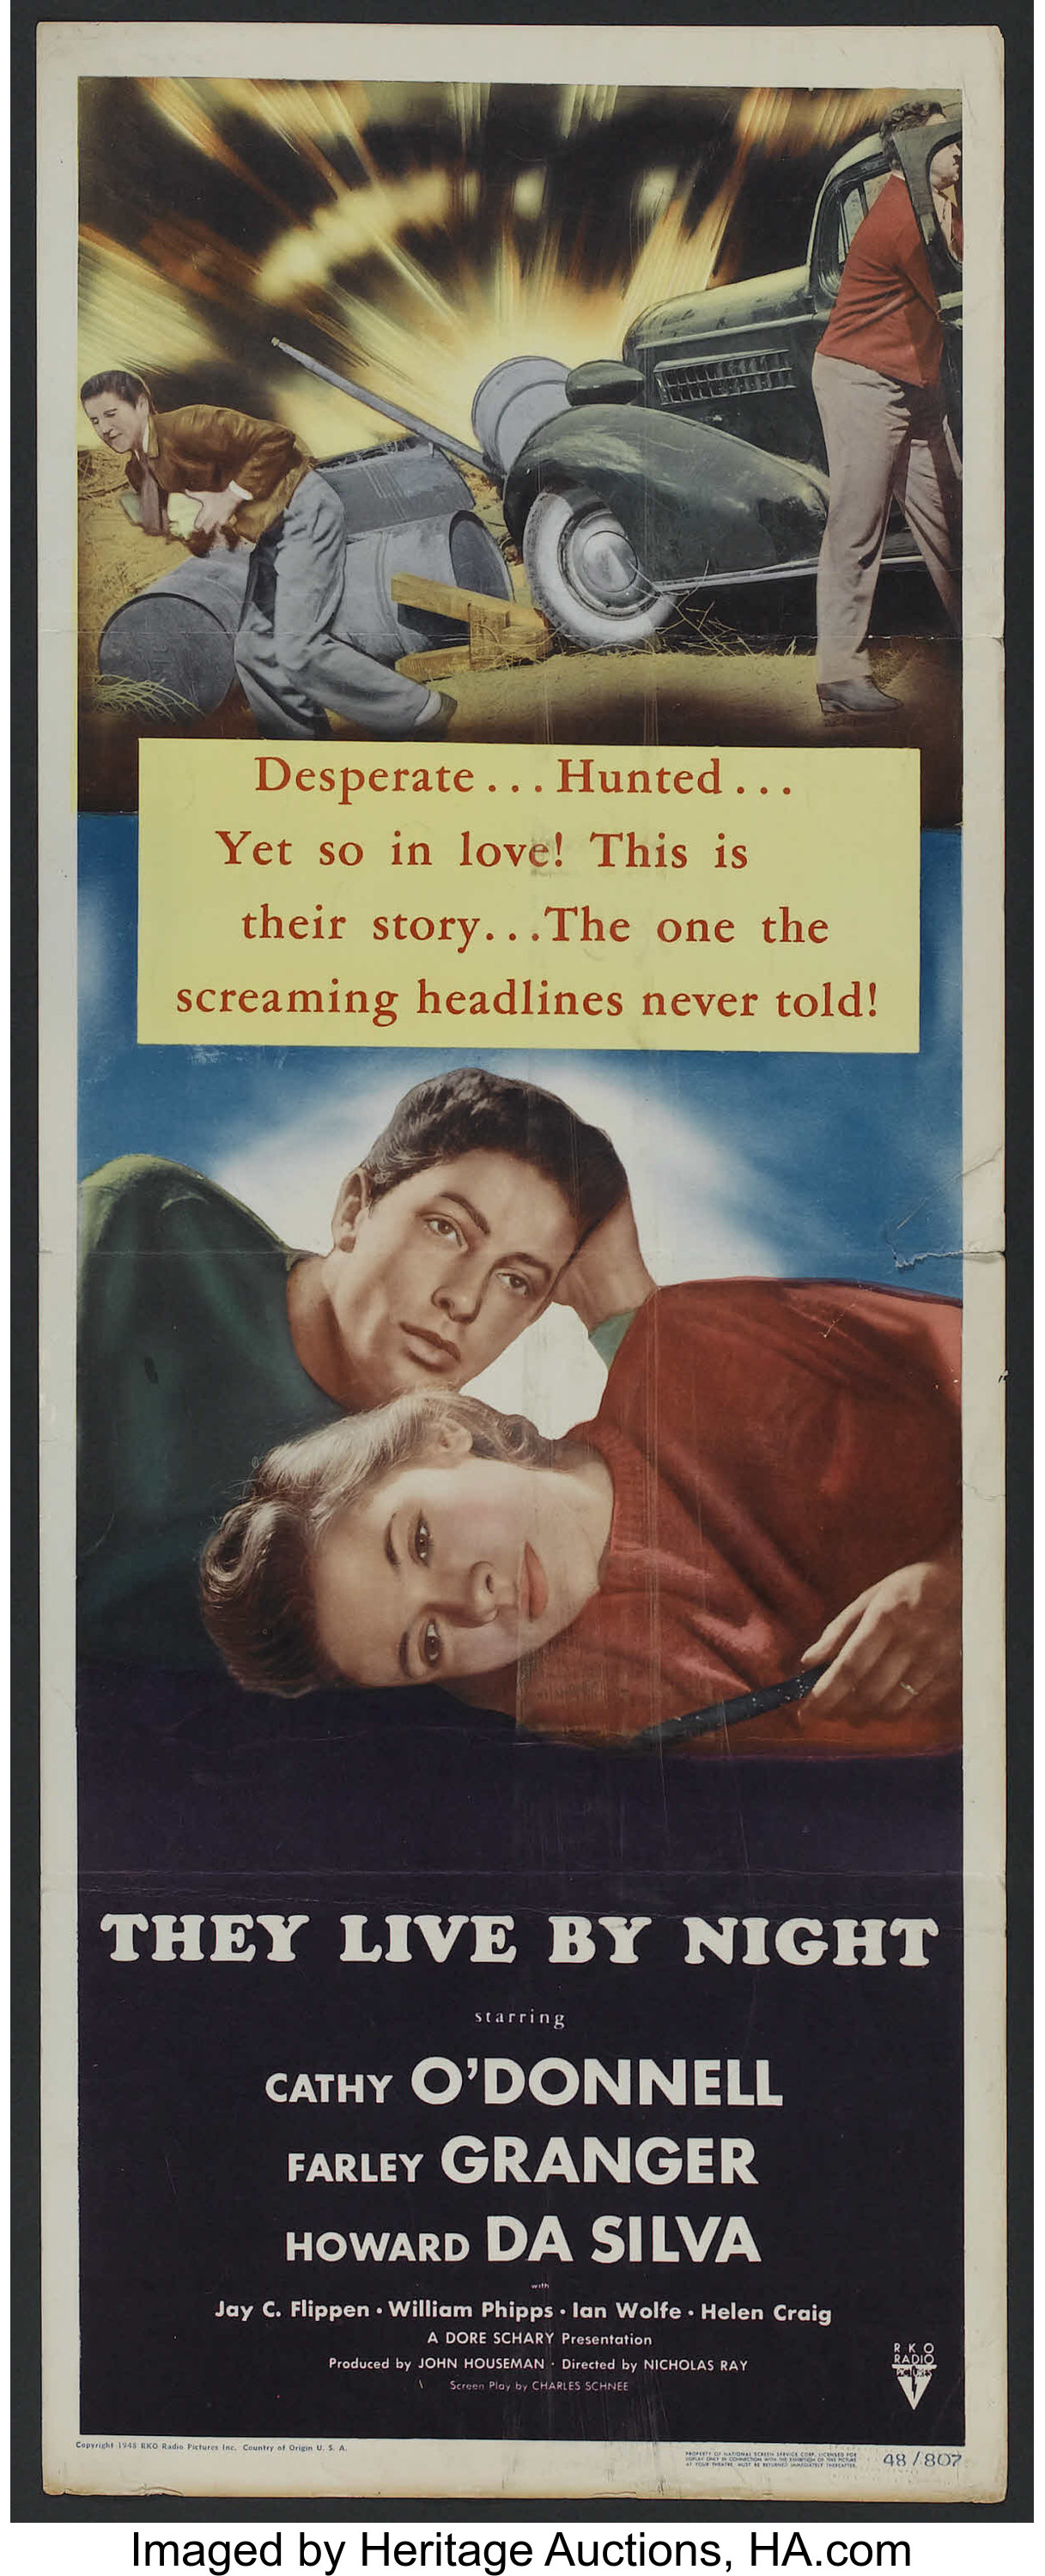 Thy live by night Farley Granger vintage movie poster